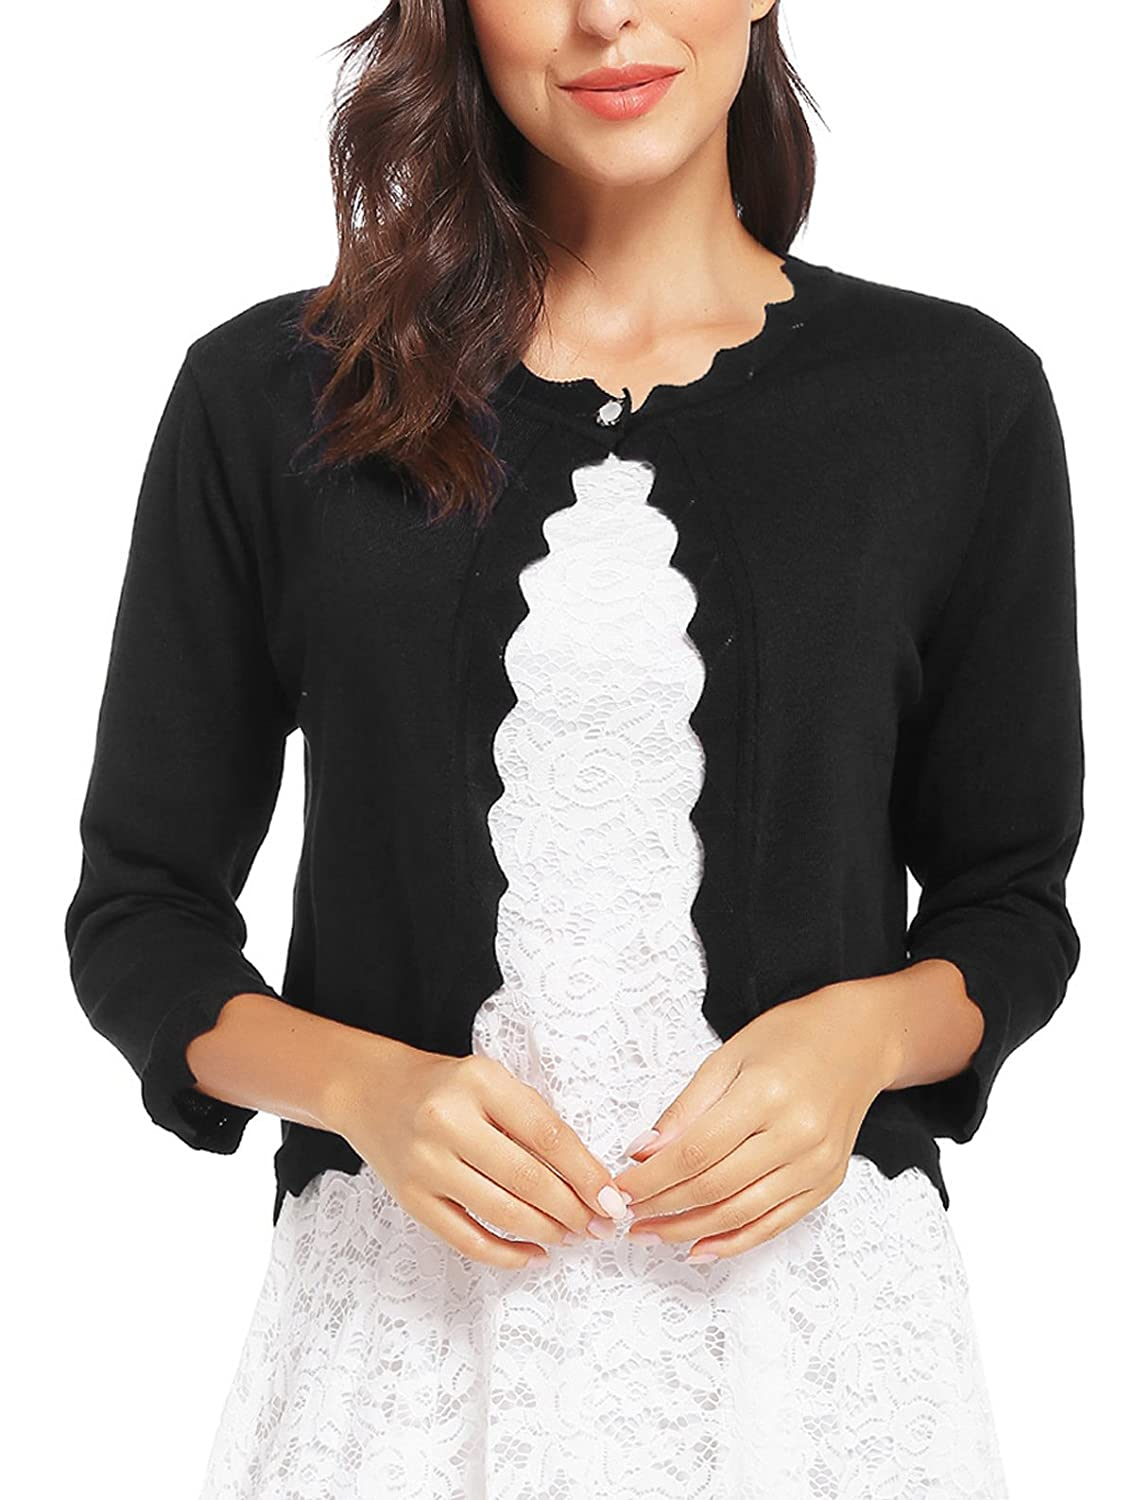 8198a11d89 TOUCH OF STYLE  Add a beautiful dynamic to any outfit with our 3 4 sleeve  bolero shrug. This bolero jacket features a button front closure